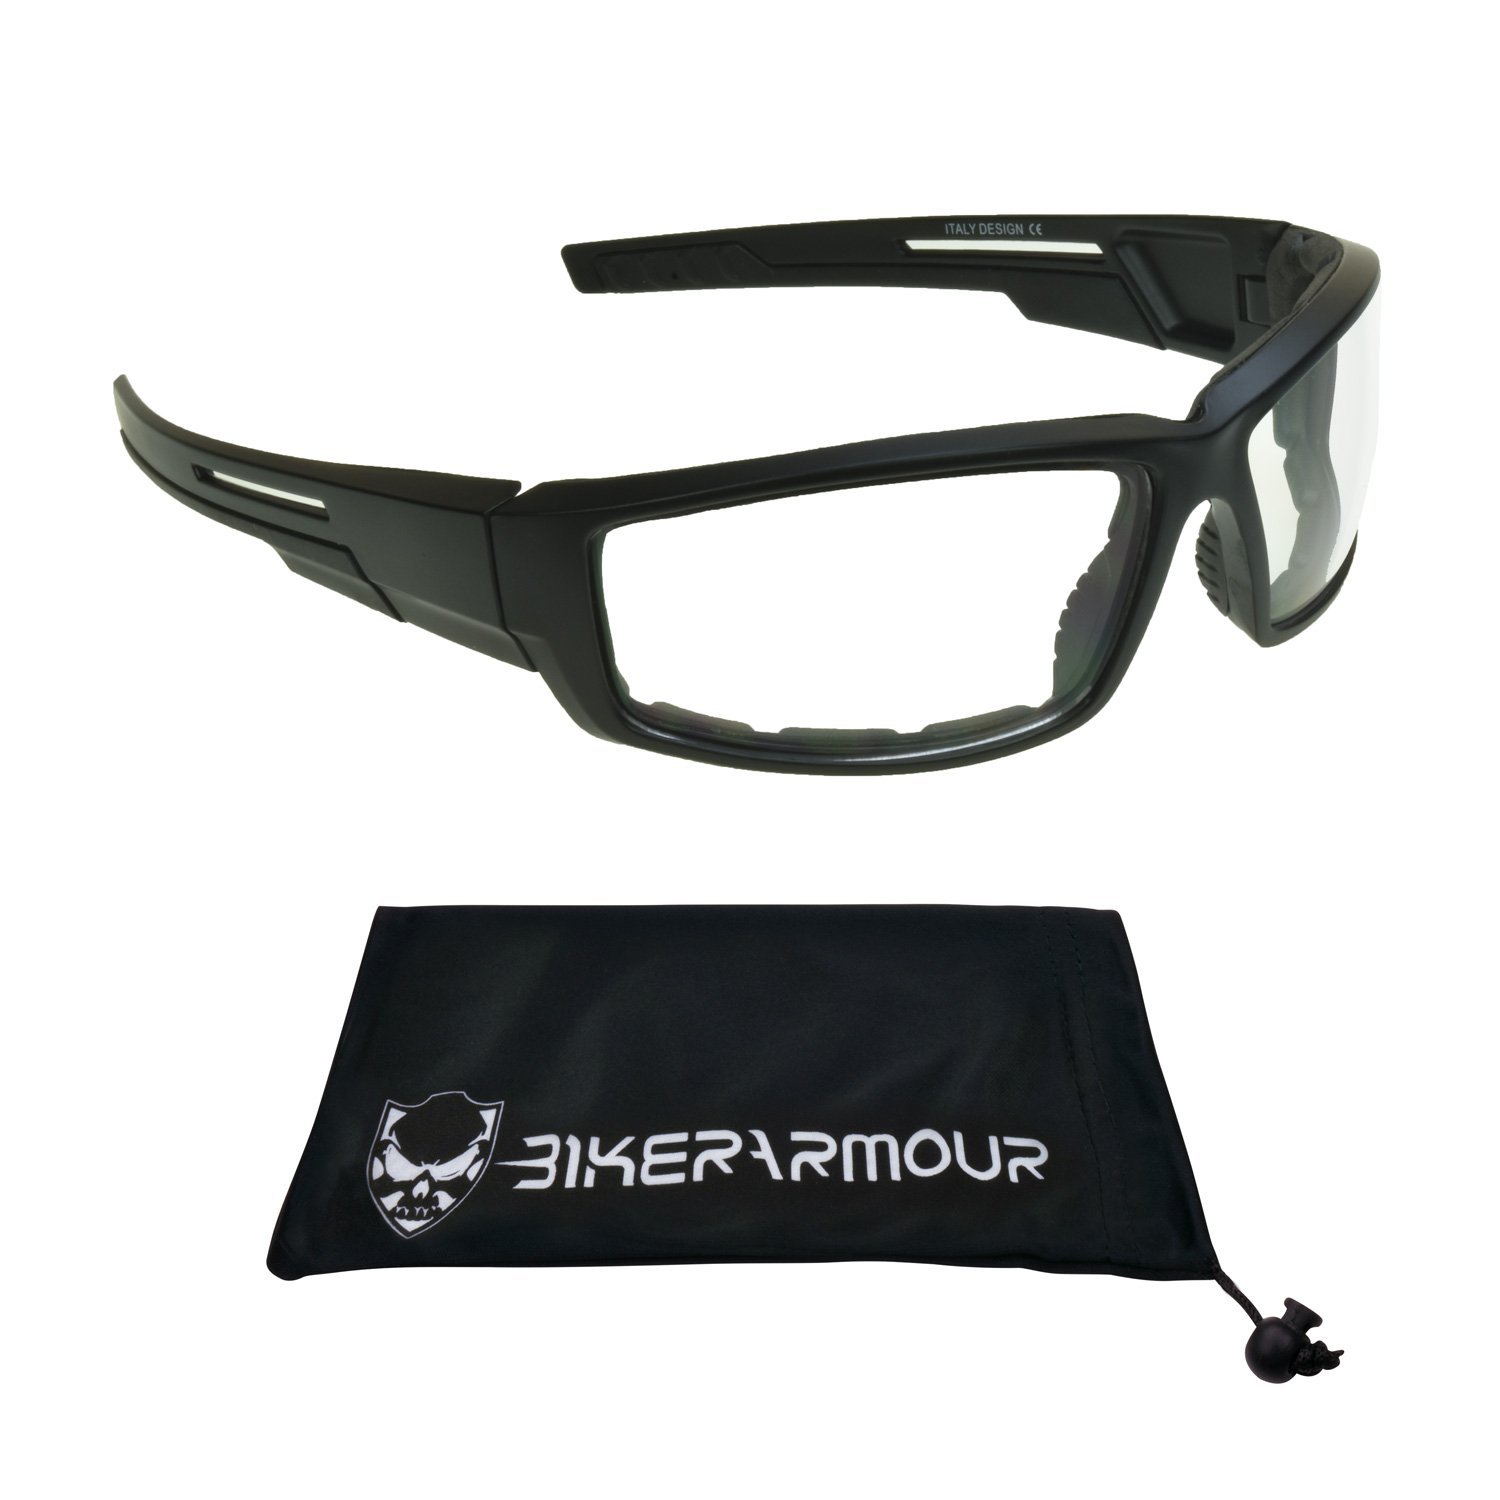 50a671f8ea03 Amazon.com  Motorcycle Riding Glasses Clear Night Vision Windproof Shield  Men  Automotive